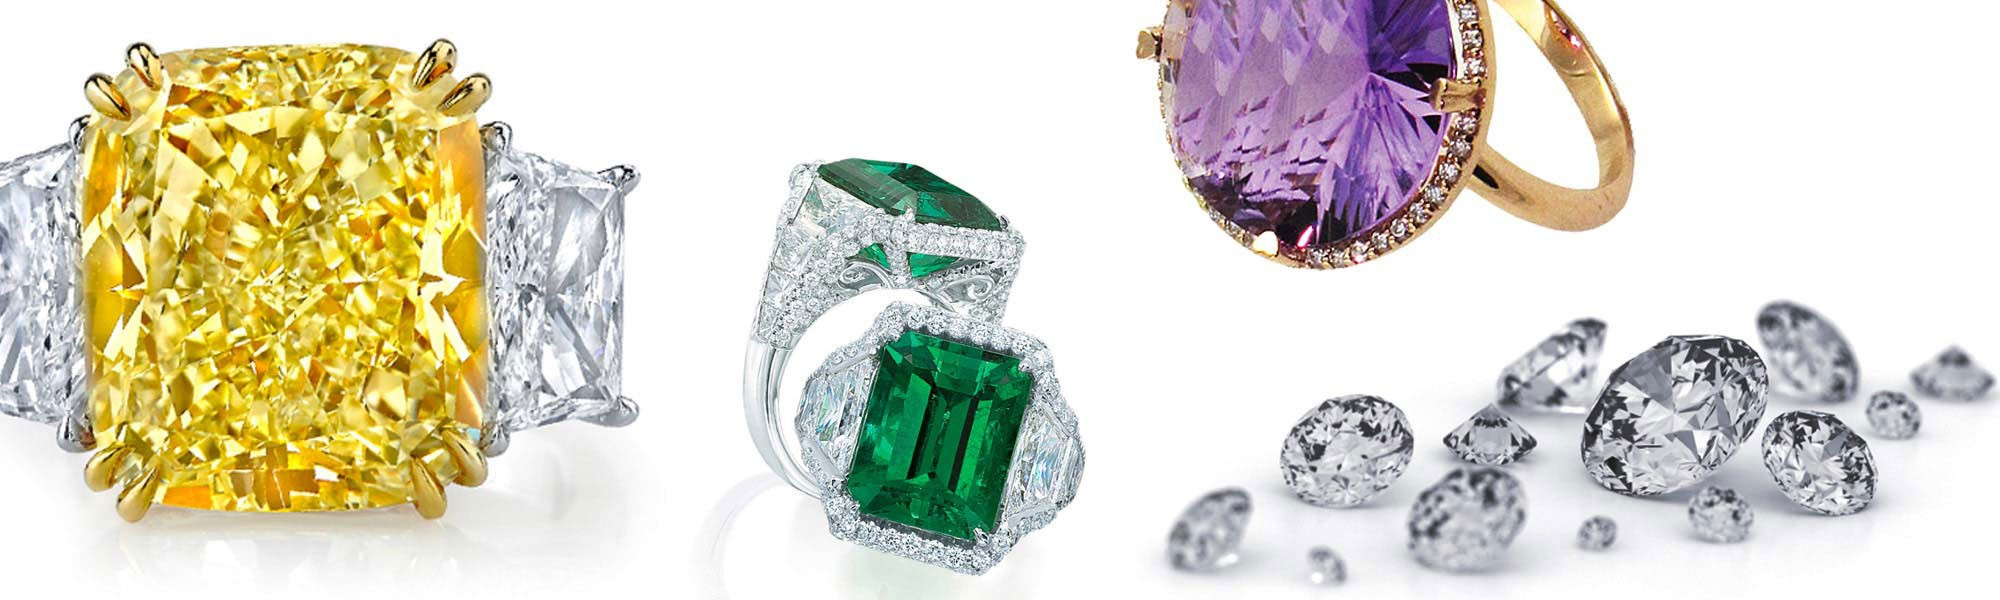 Diamonds & Gemstone Jewelry in Palm Desert